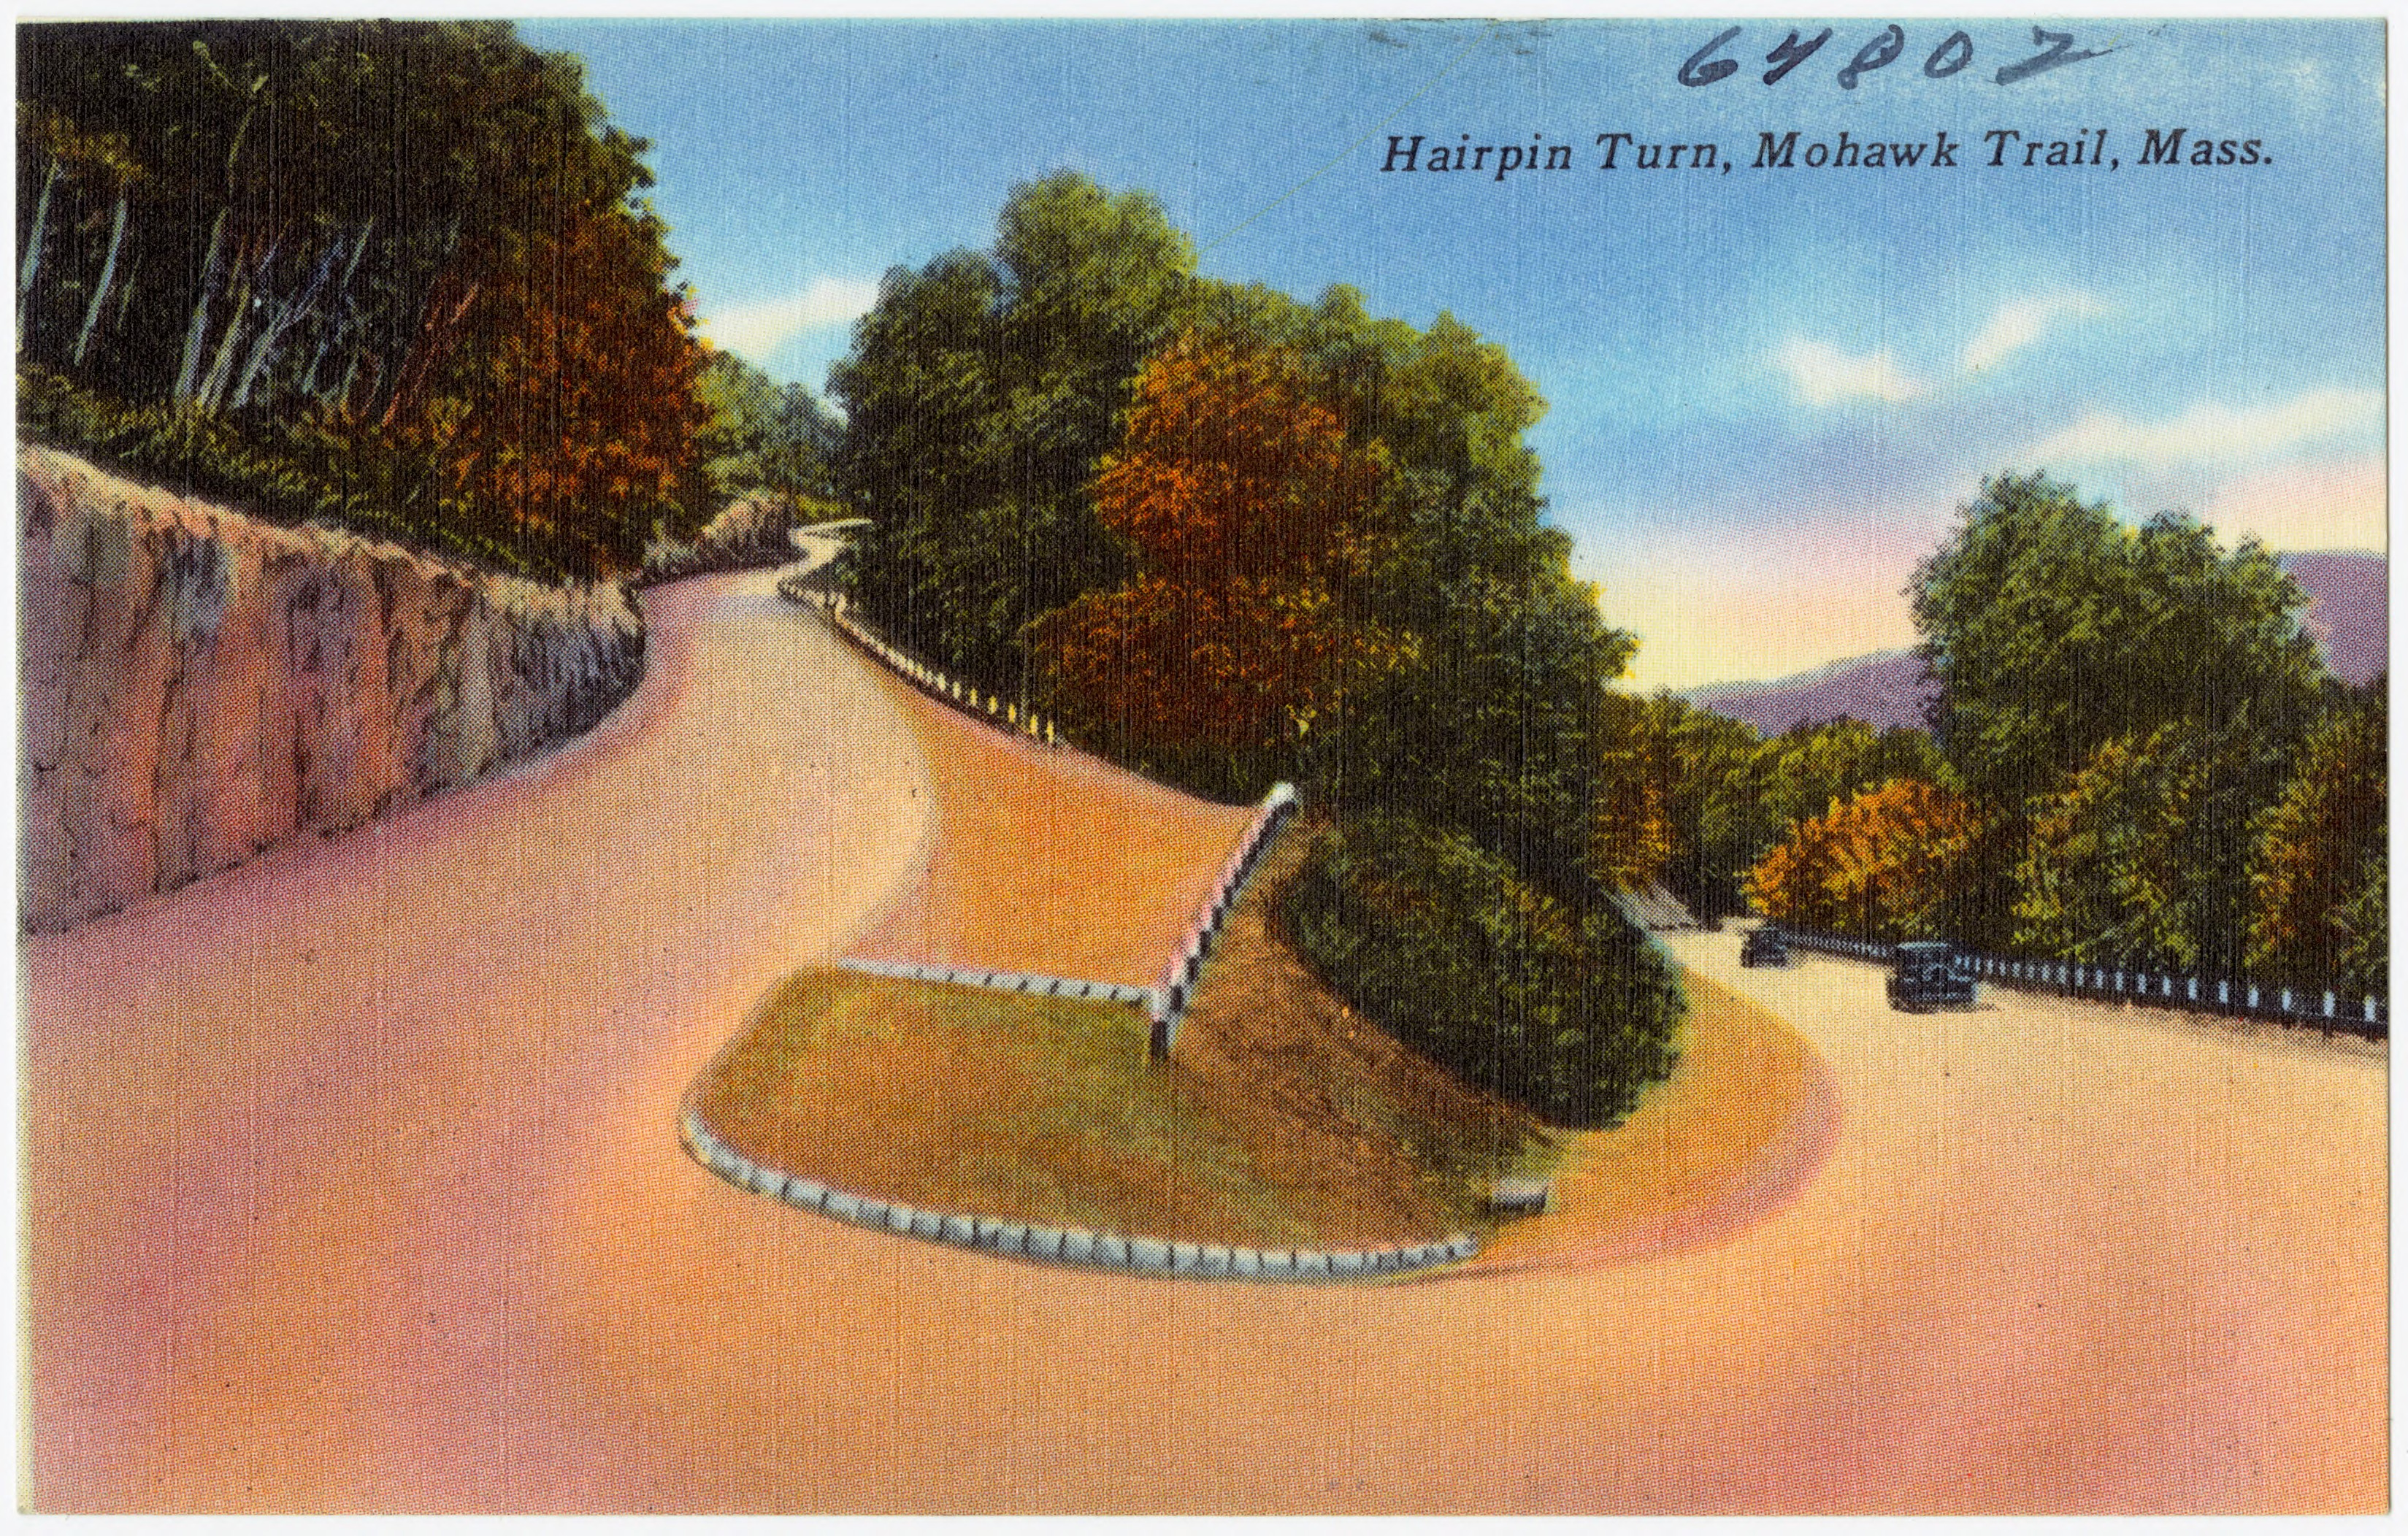 File:Hairpin turn, Mohawk Trail, Mass (64802).jpg